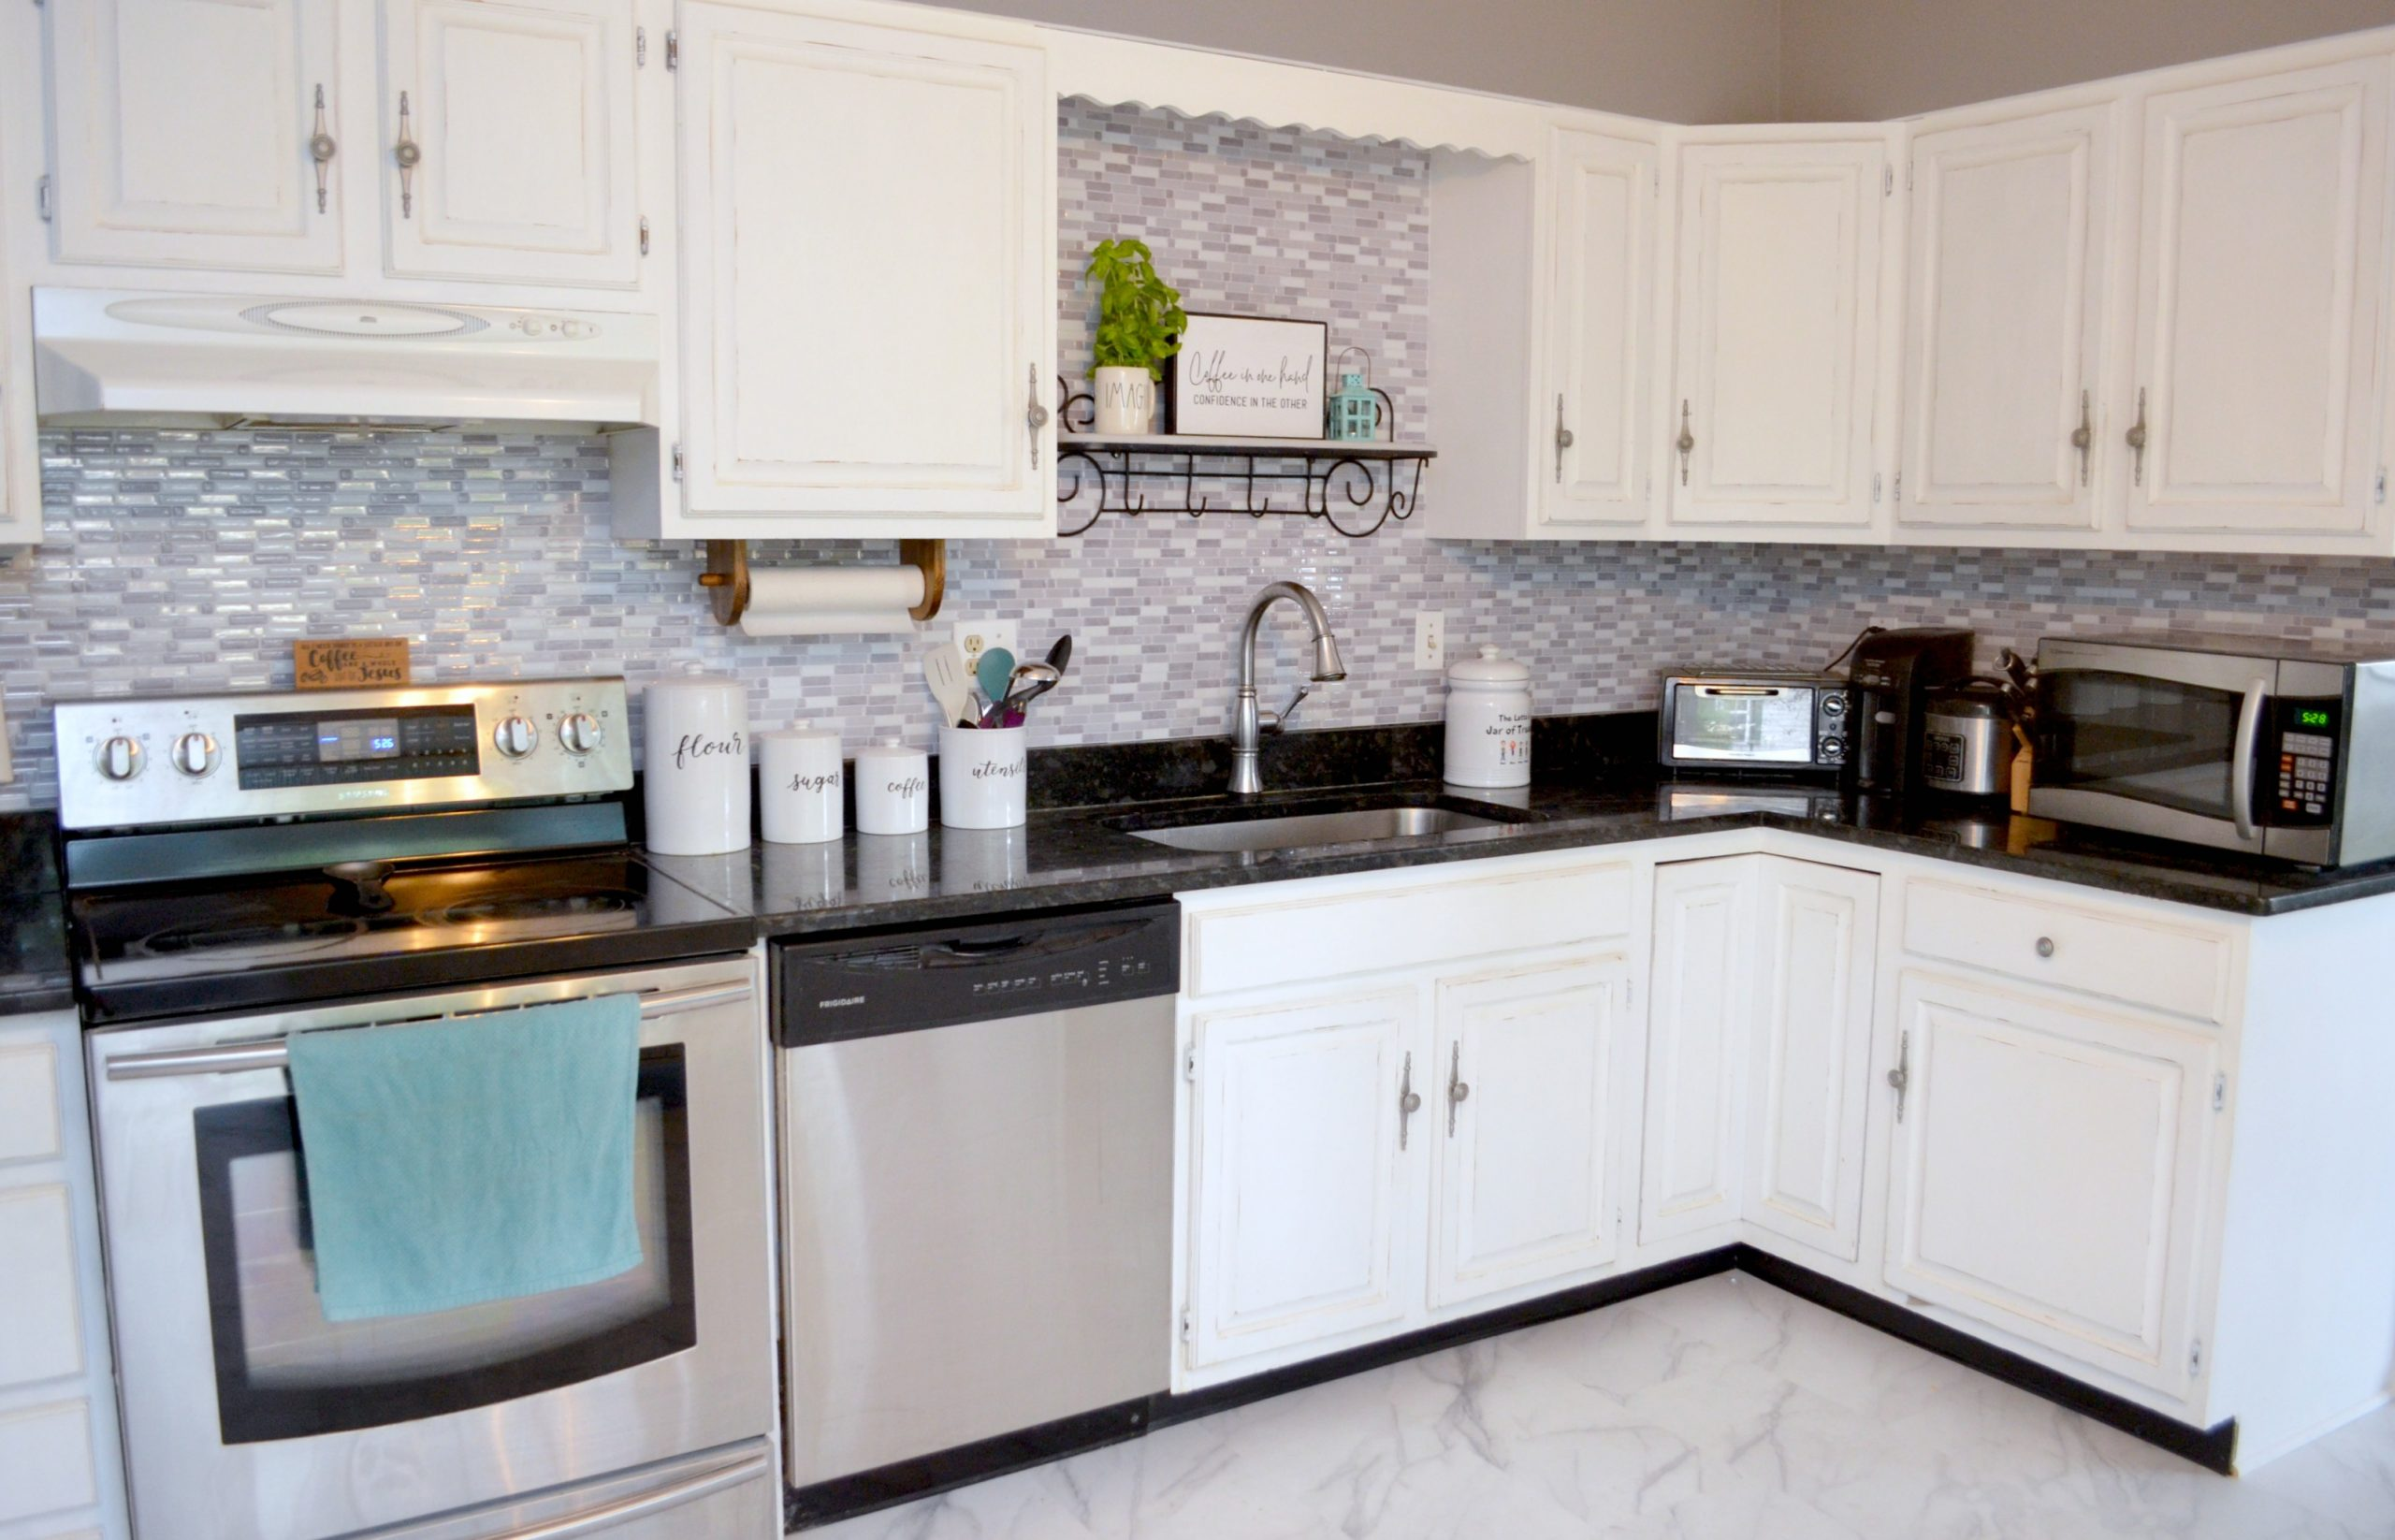 DIY Peel & Stick Kitchen Backsplash - Amy Latta Creations